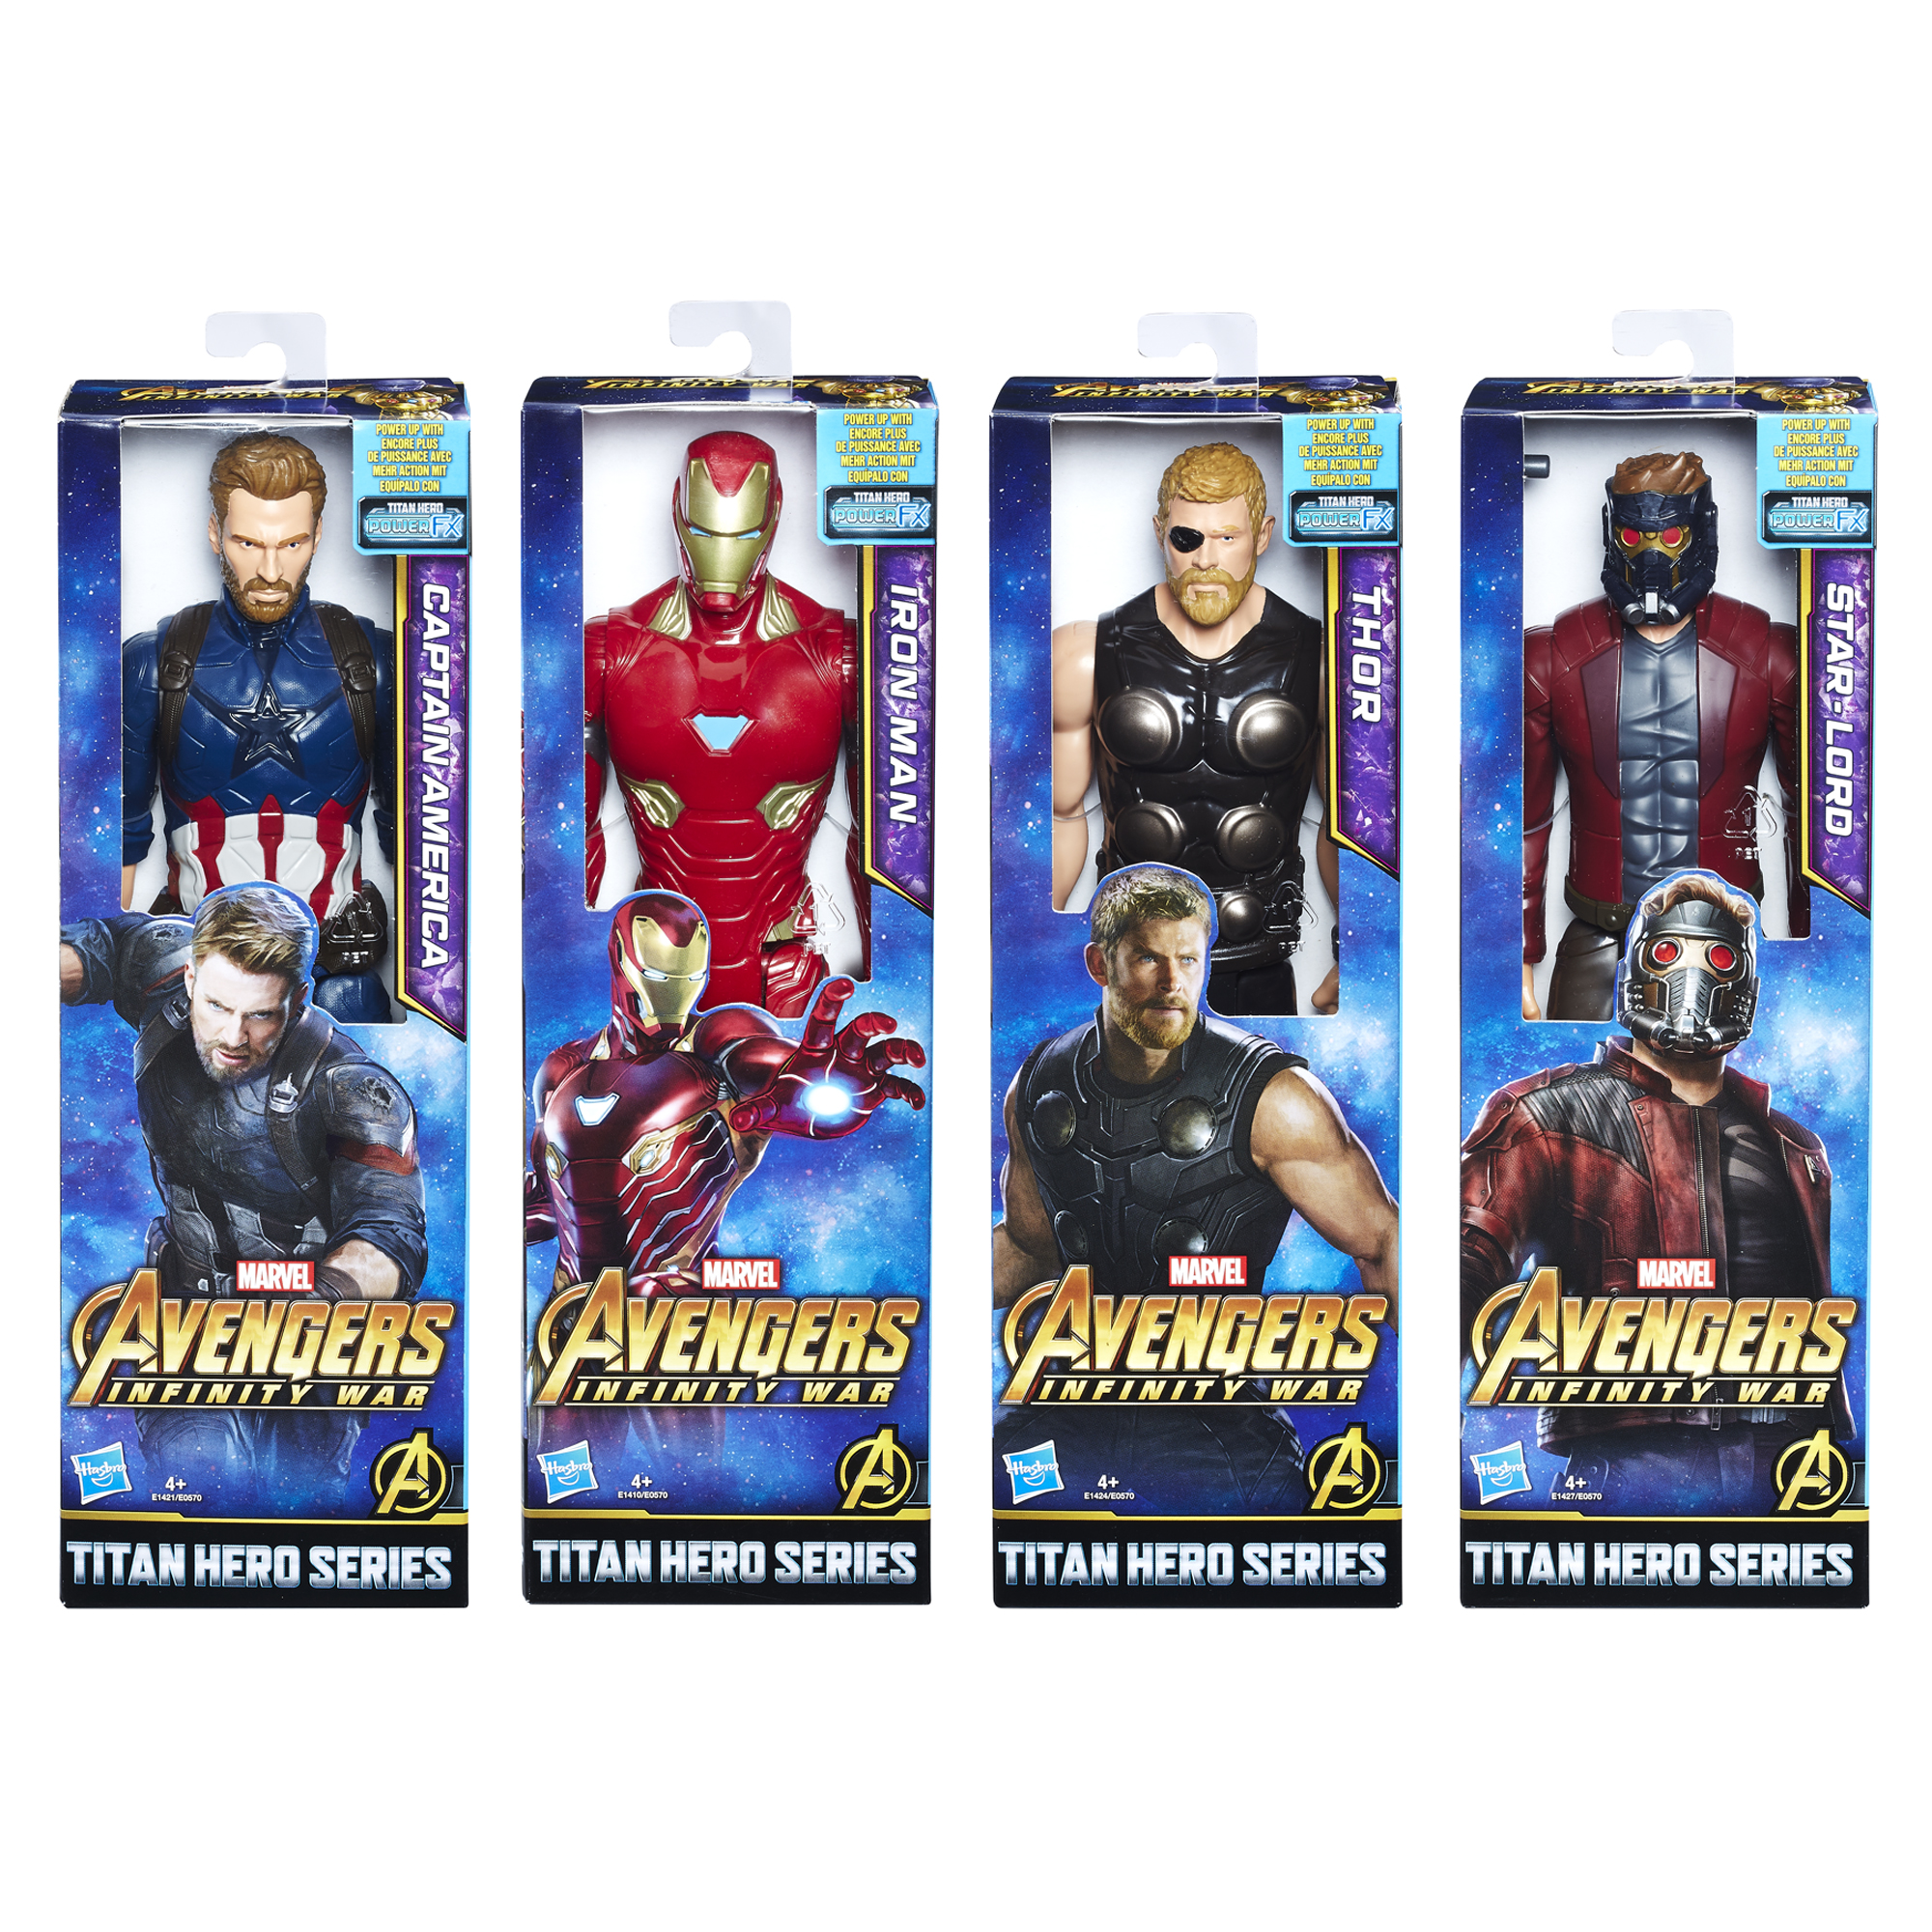 Picture of Avengers Infinity War Titan Hero Series A Assortment Pack